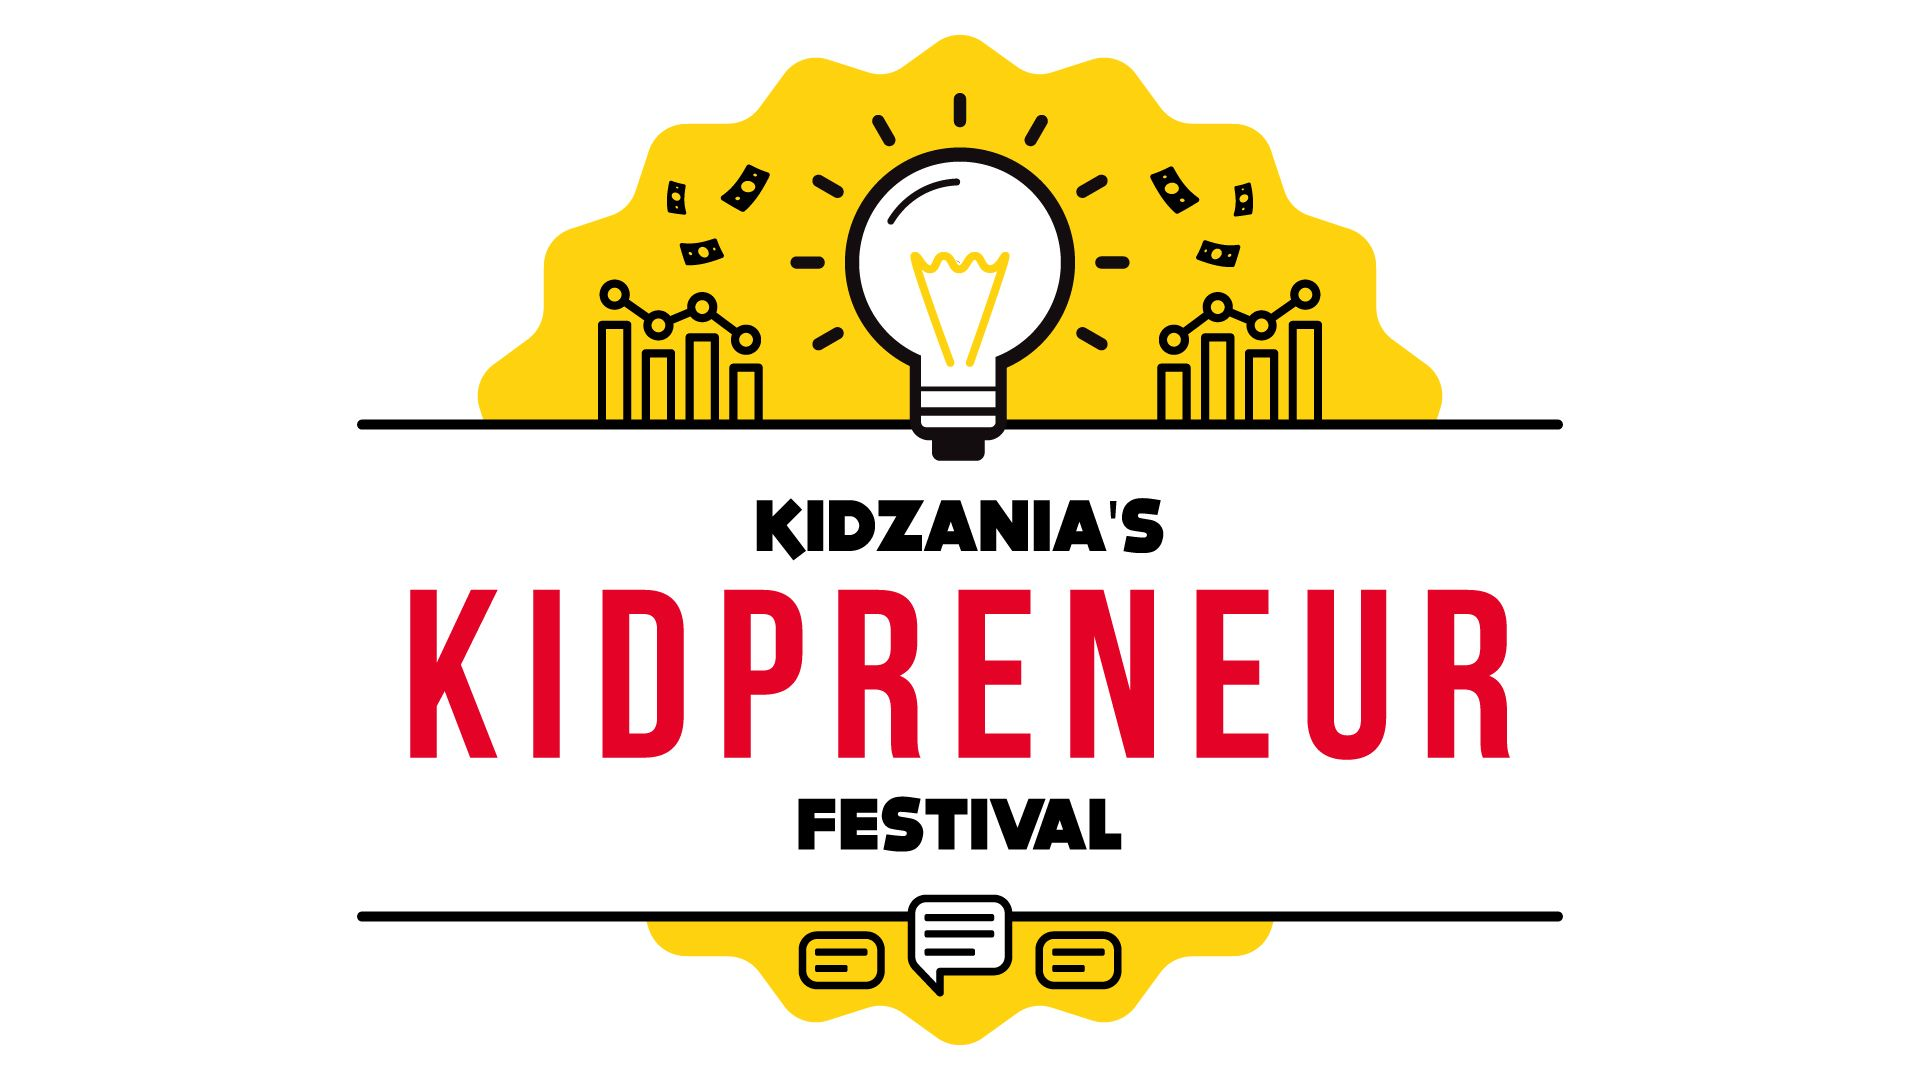 KidZania's KidPreneur Festival is back! - Saturday 13th October 2018